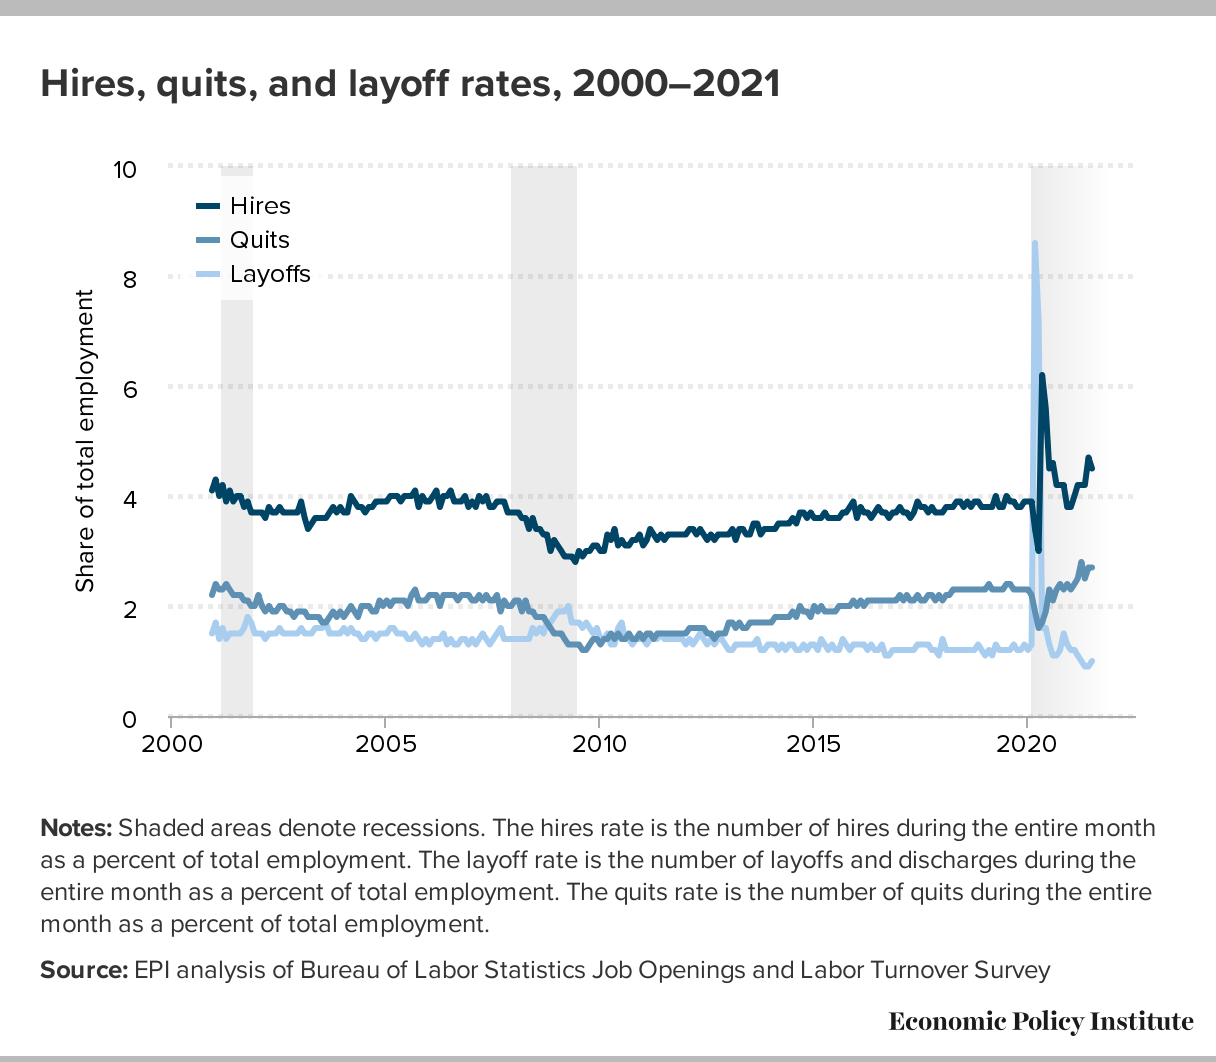 Graph- Hires, quits and layoff rates between 2000-2021